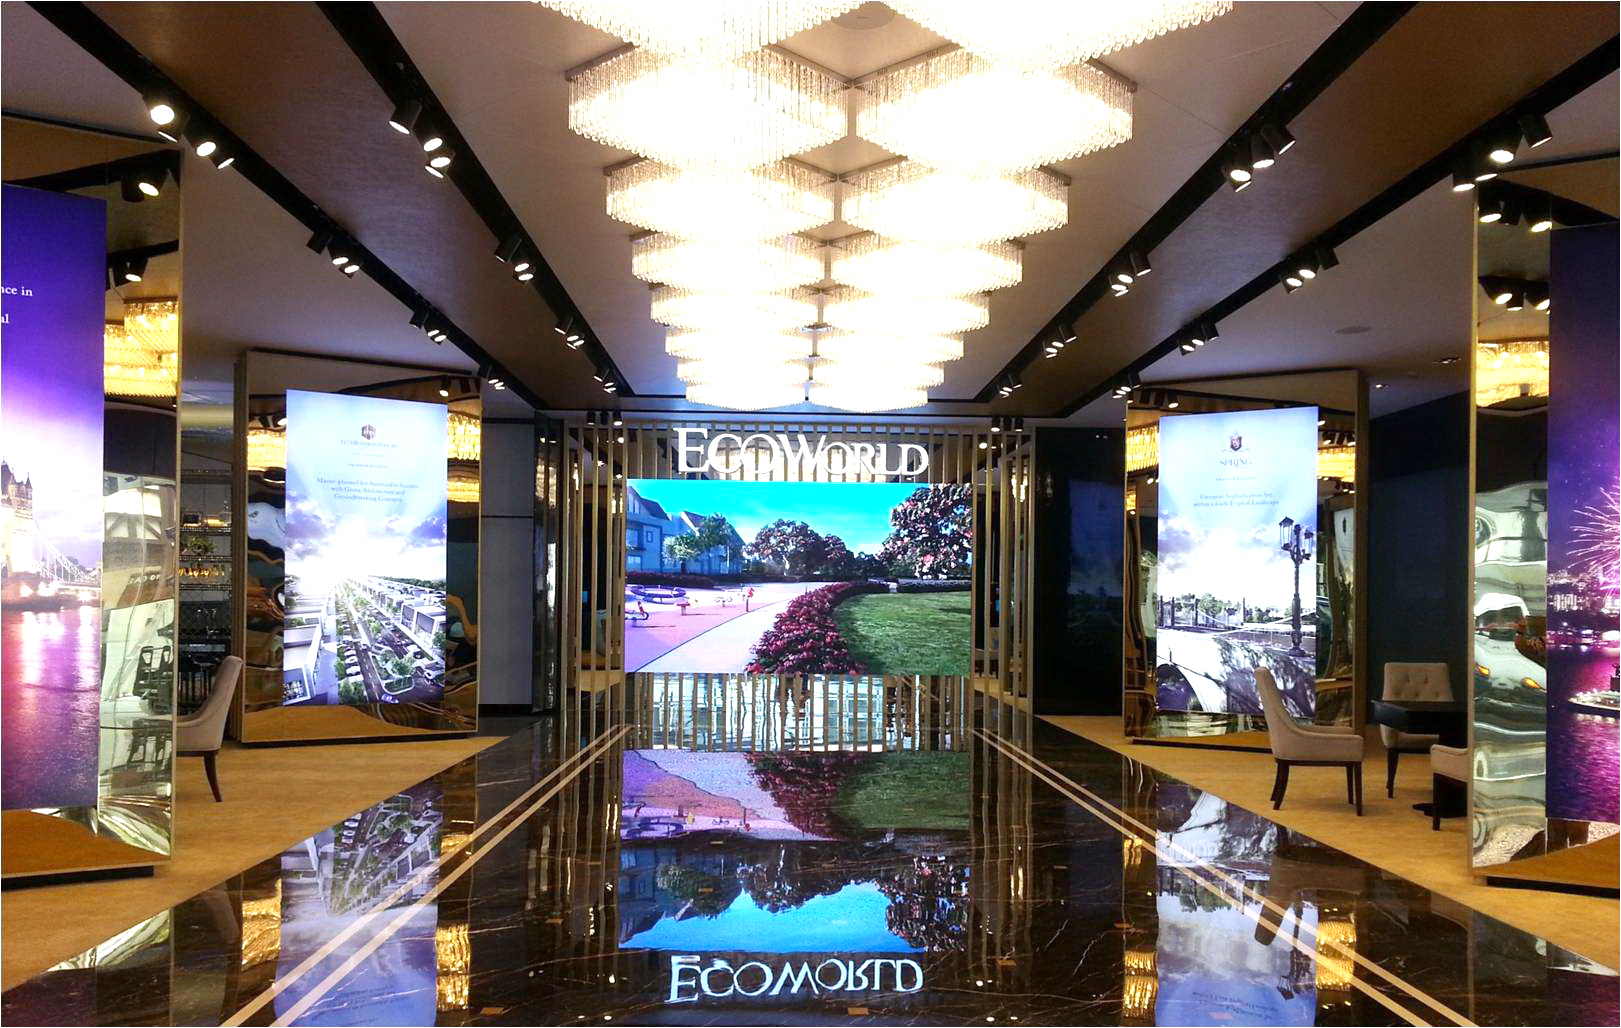 Ecoworld-Singapore-Gallery-1